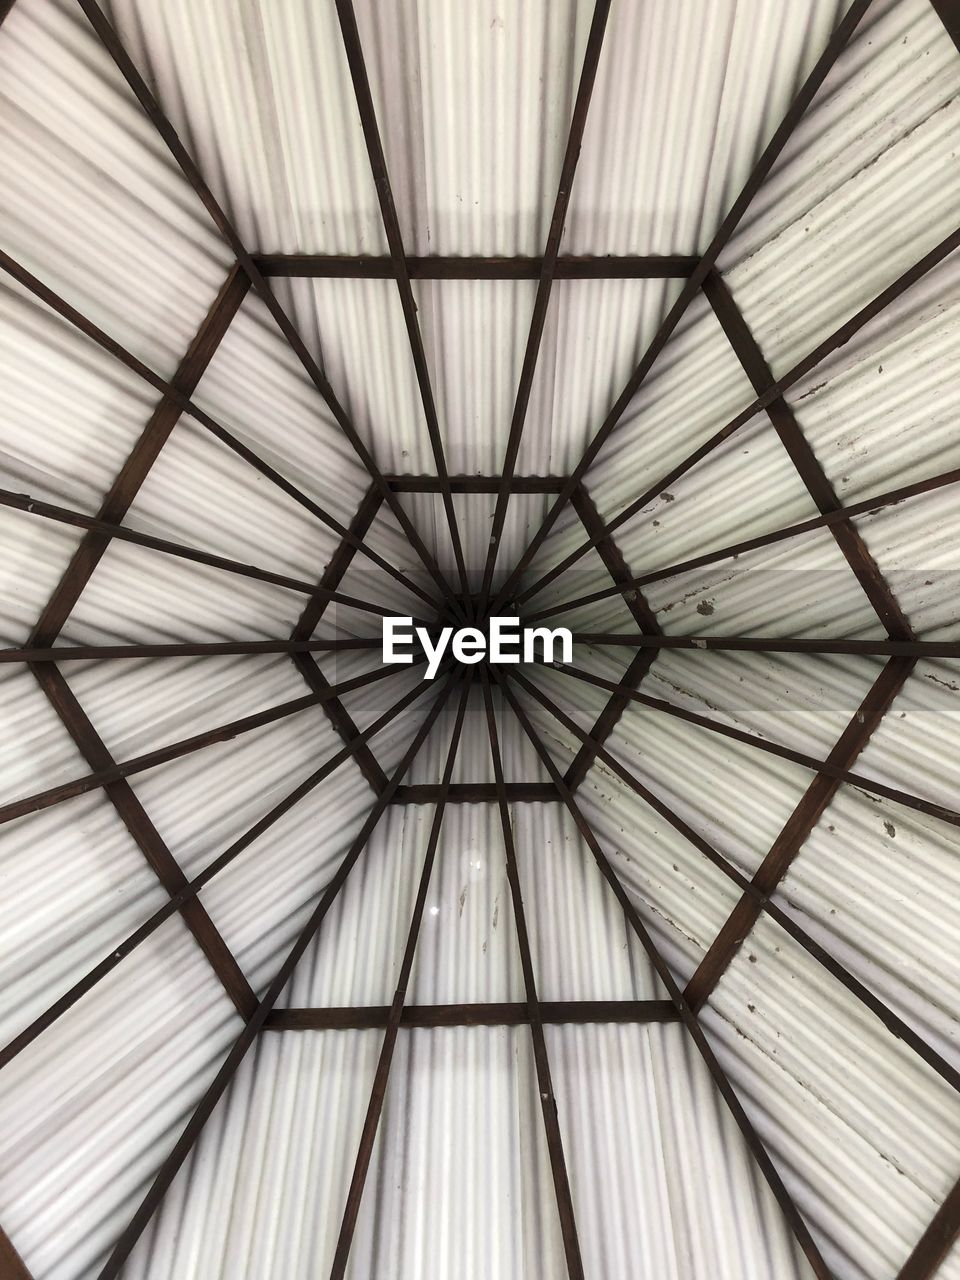 pattern, full frame, backgrounds, ceiling, indoors, no people, low angle view, design, protection, close-up, security, shape, directly below, geometric shape, architecture, white color, umbrella, day, repetition, safety, sheltering